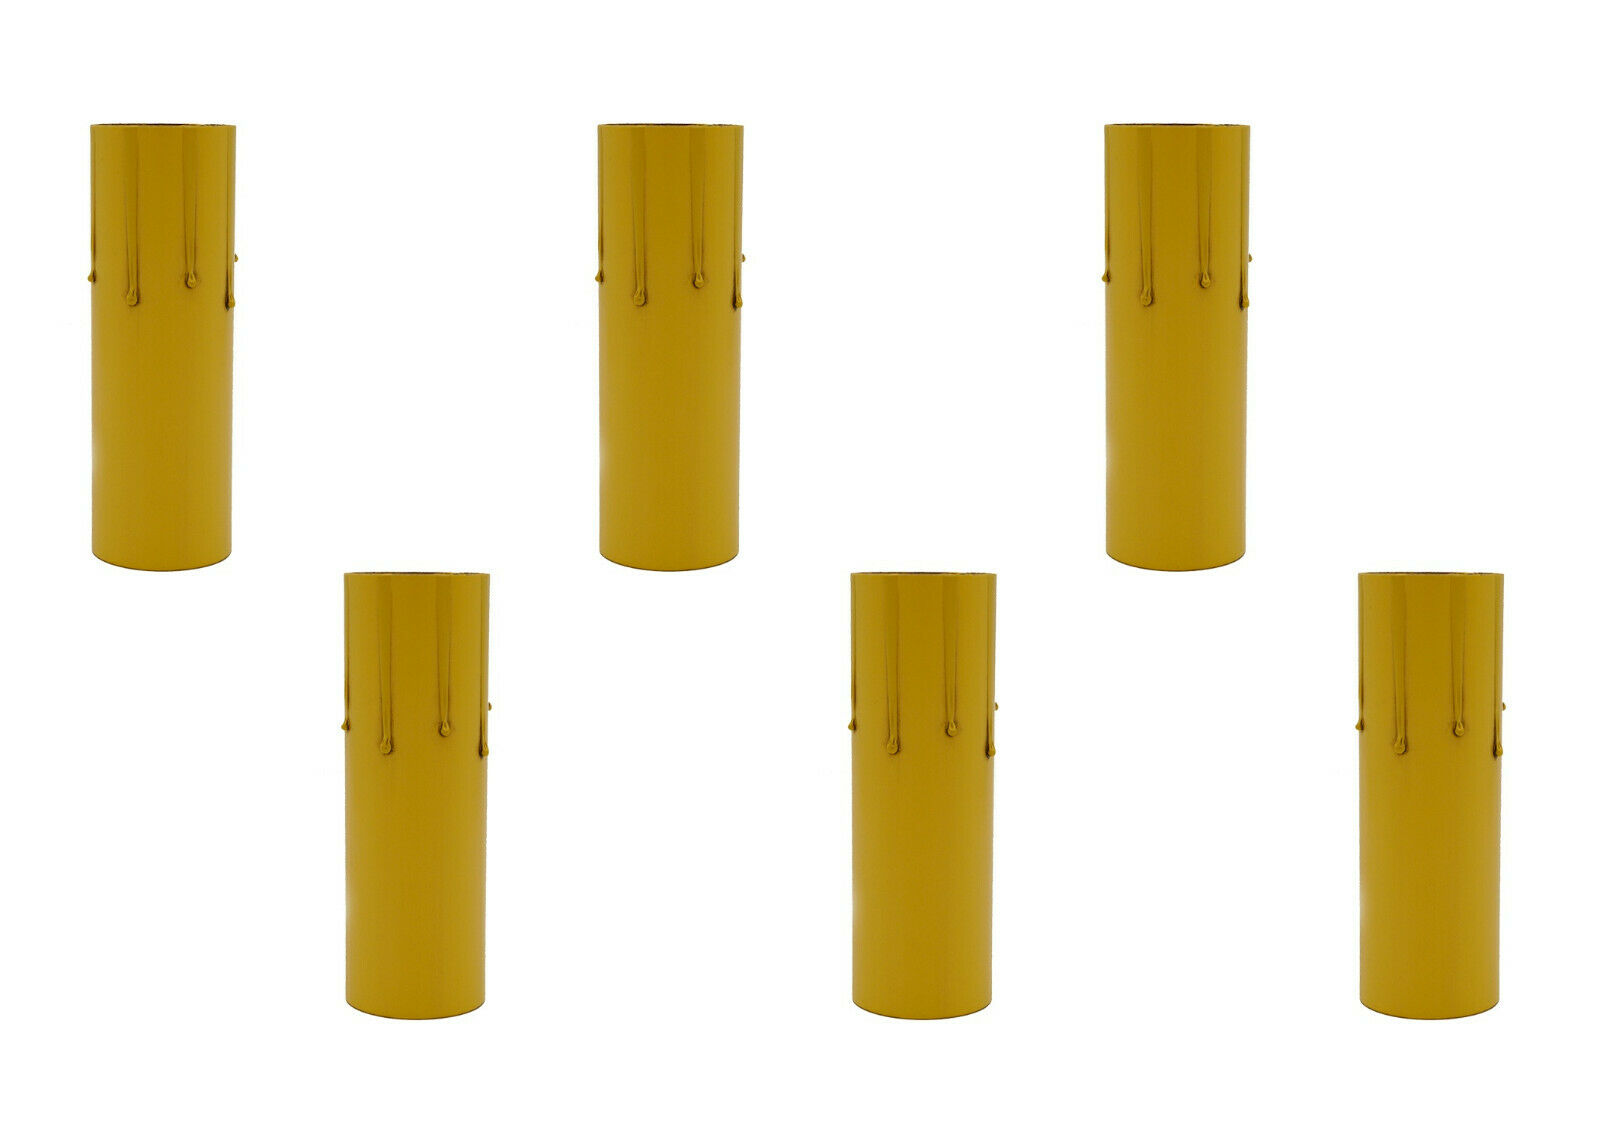 4″ Fibre Drip Candle Cover For Medium (Edison) Base Lamp Sockets, 25 Pieces Collectibles